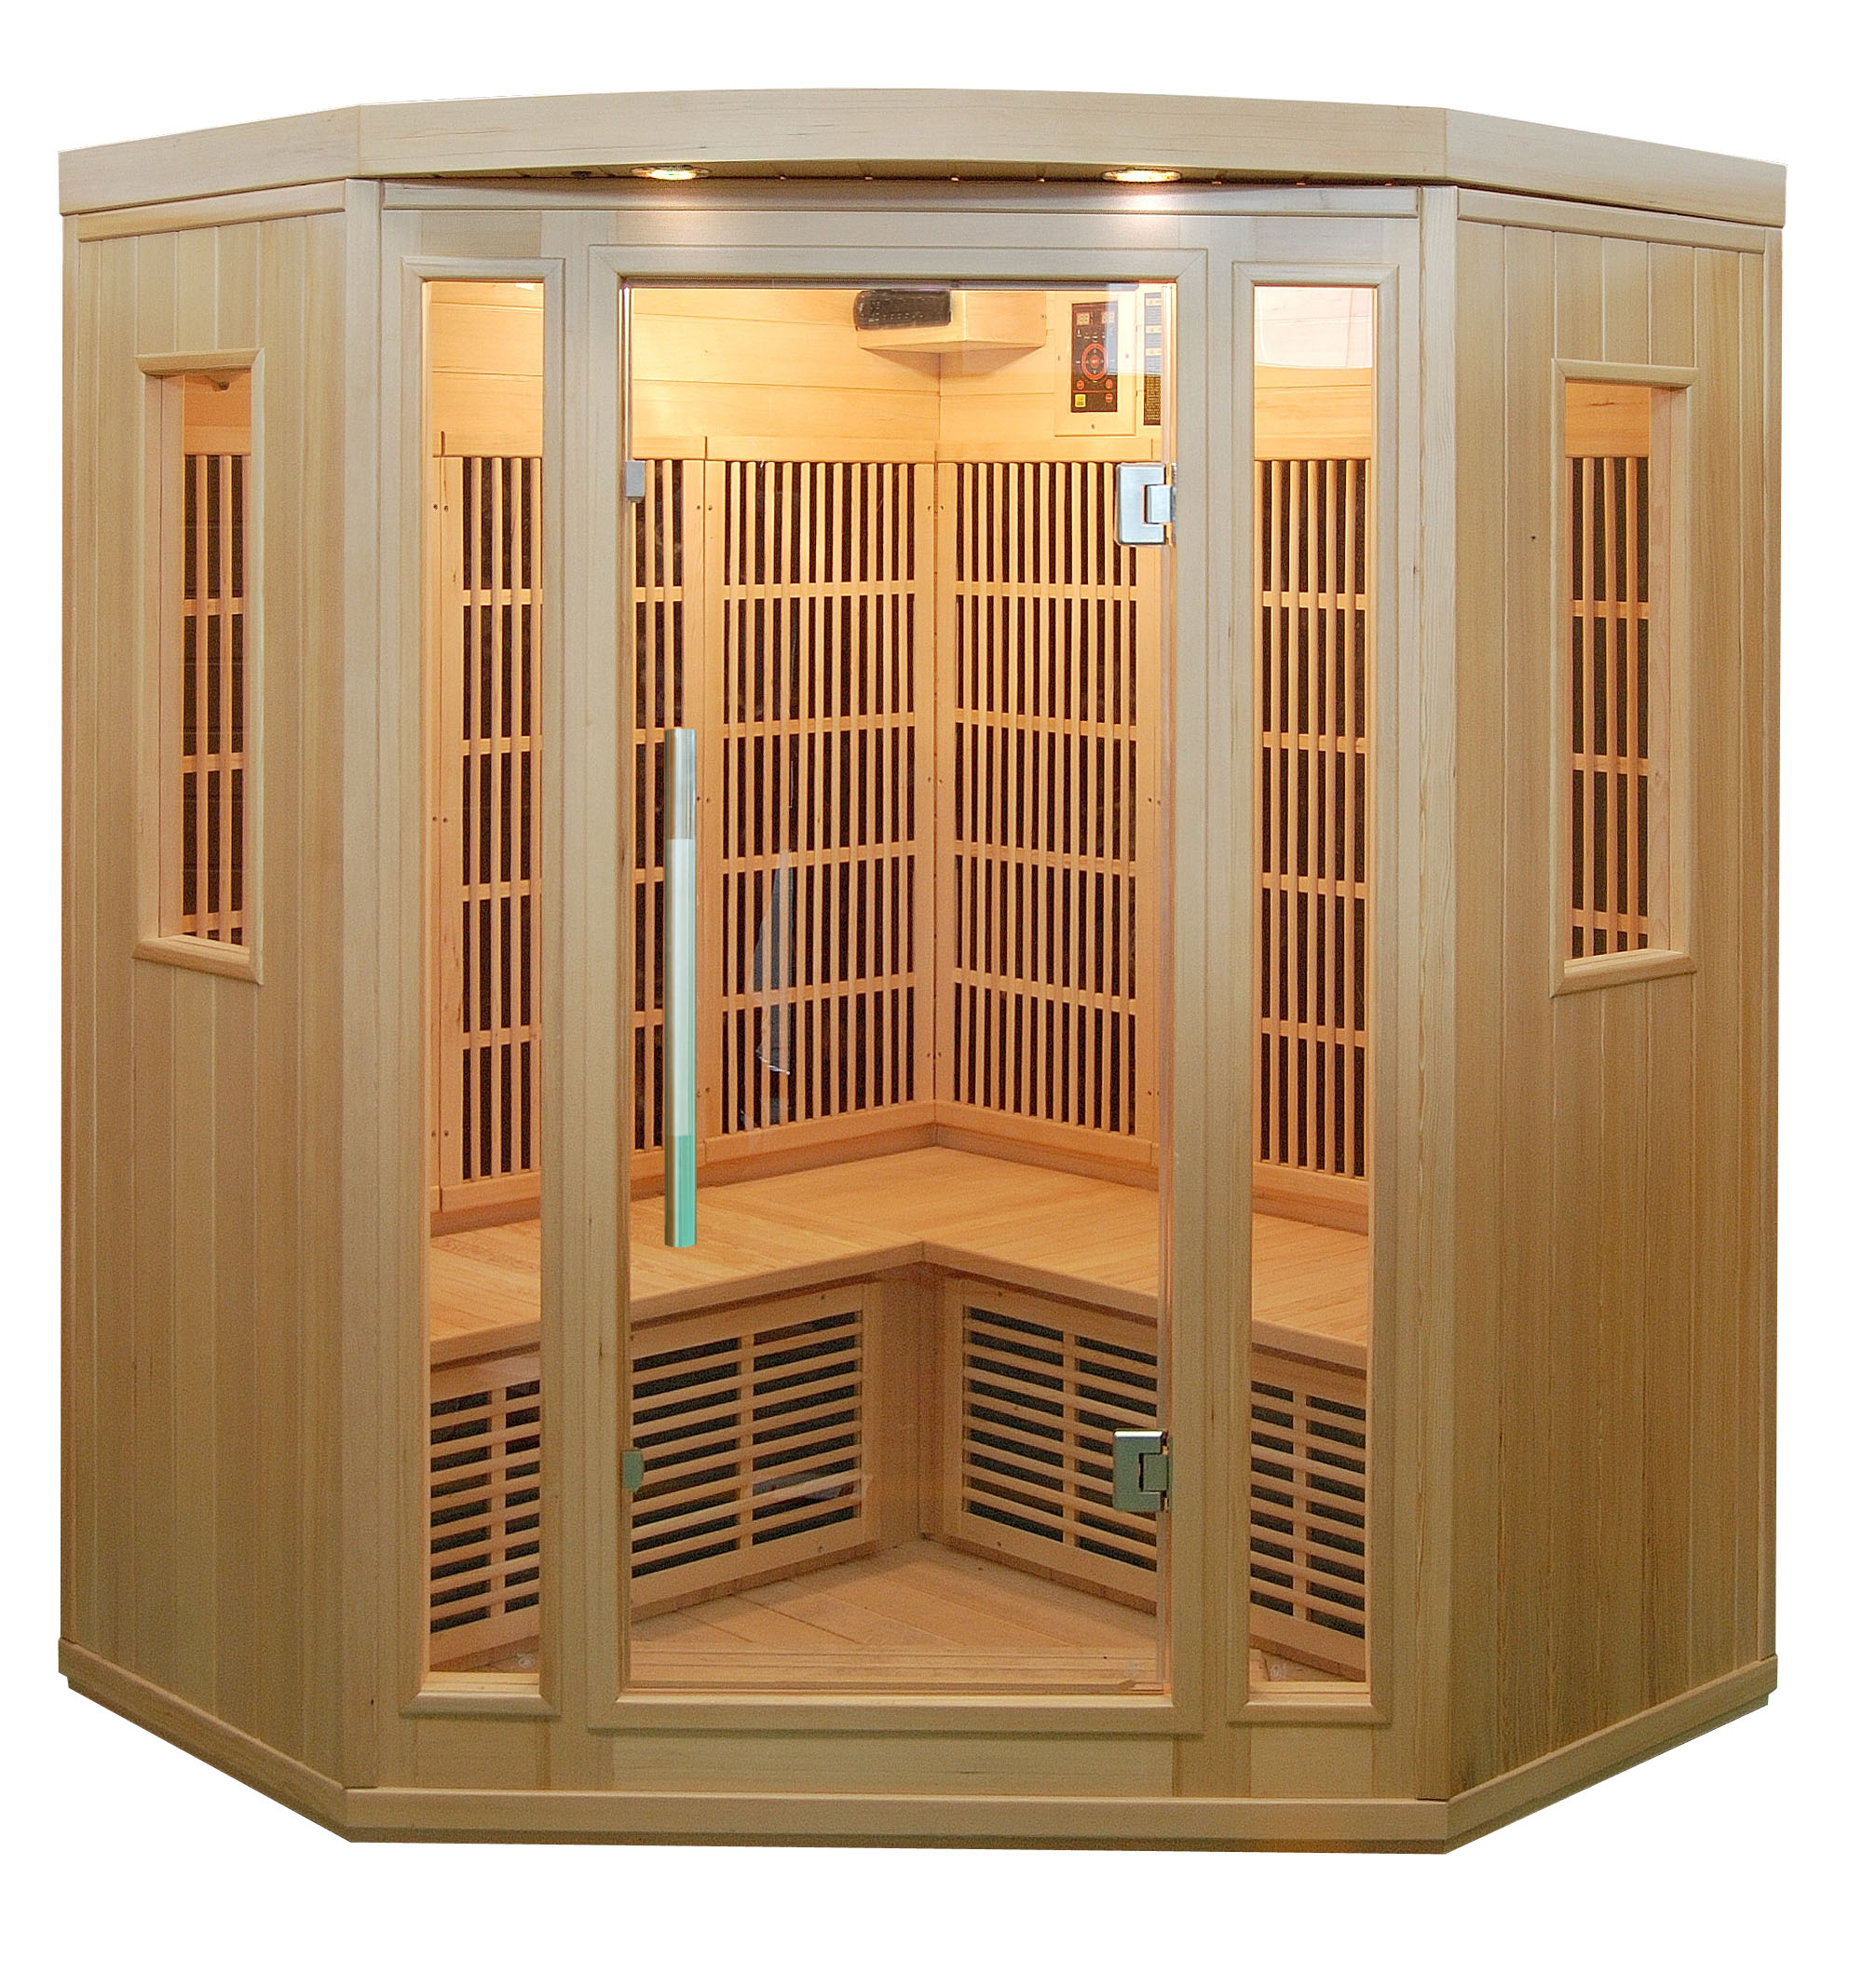 Piscinex sauna duo sauna infrarouge quatuor 3 4 places - Sauna infrarouge utilisation ...